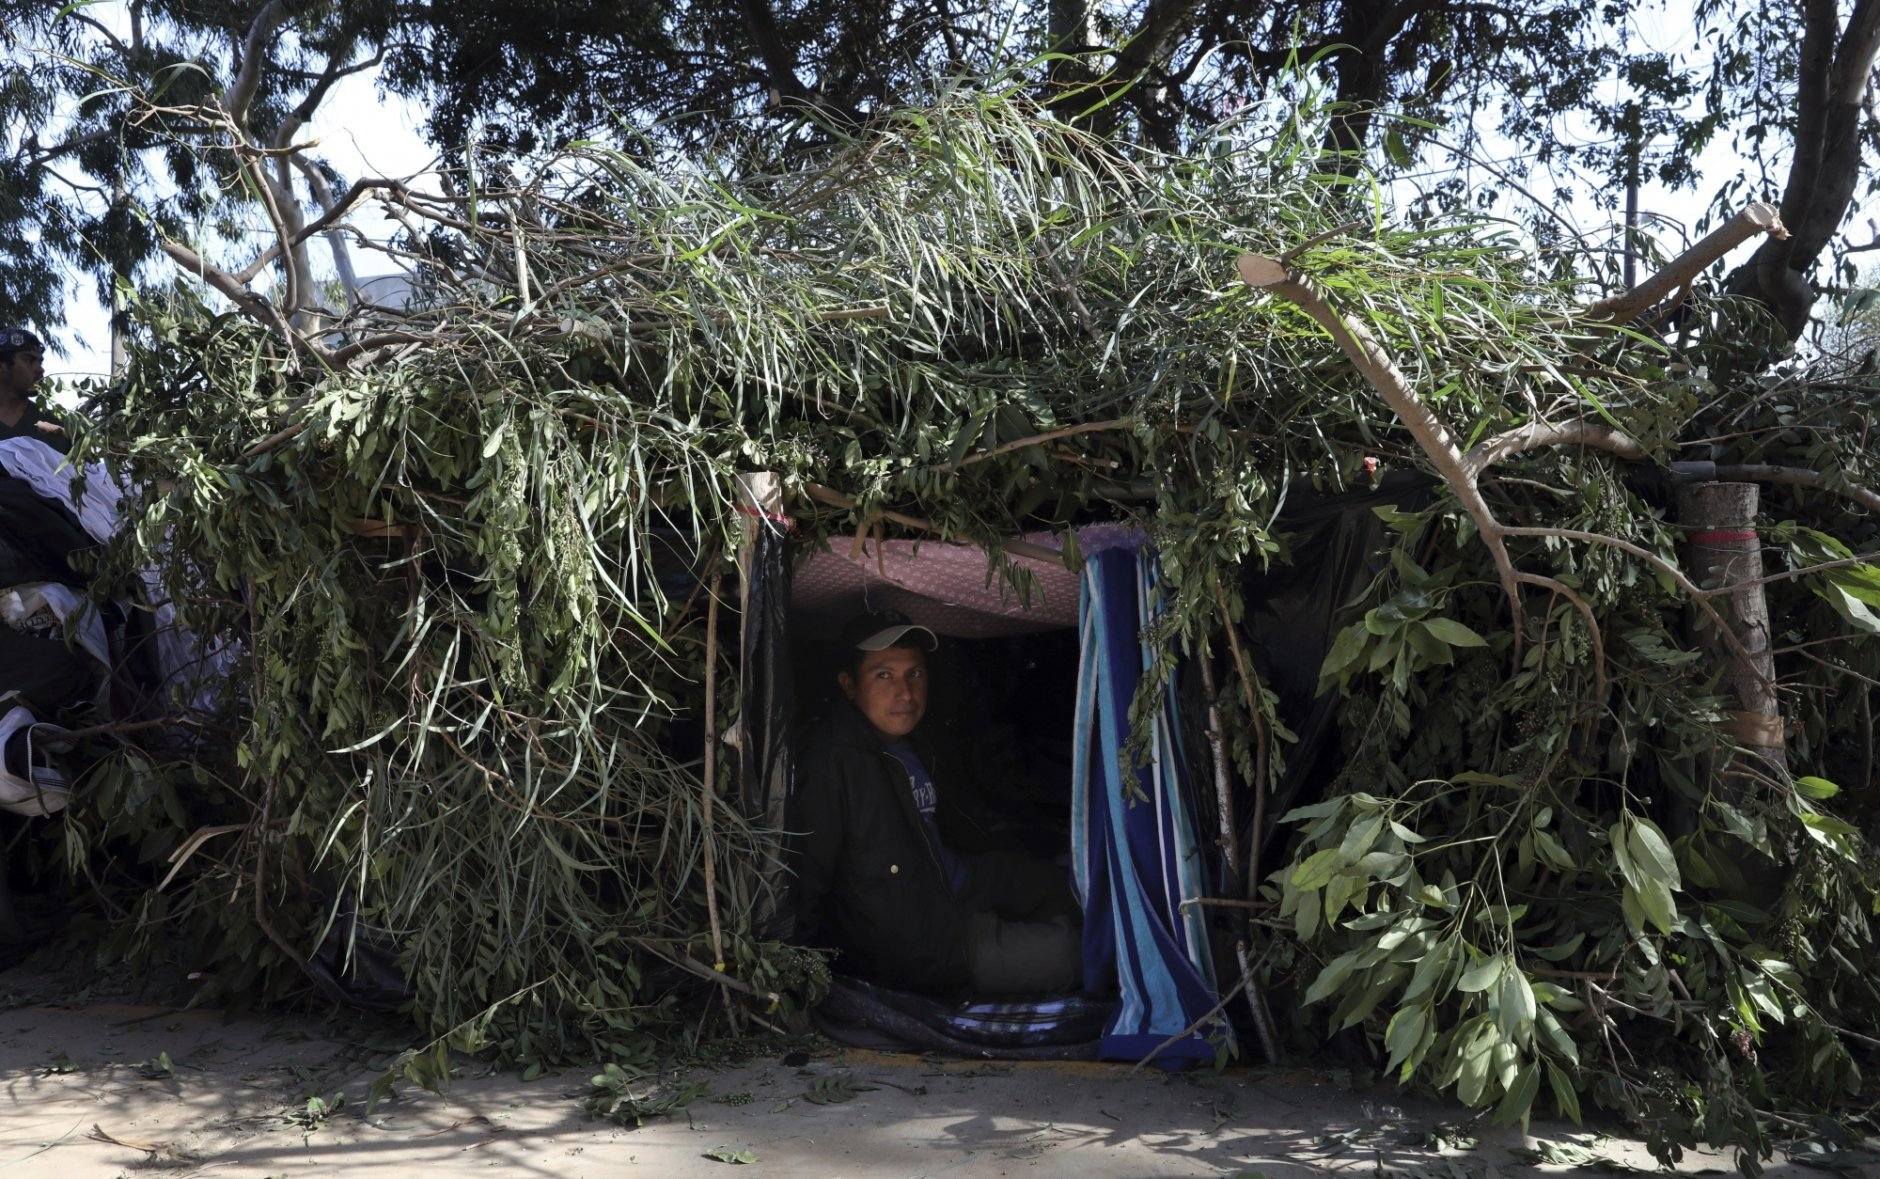 """Honduran migrant Mauro Hernandez rests inside a makeshift tent at a temporary shelter in Tijuana, Mexico, early Saturday morning, Nov. 17, 2018. Many of the nearly 3,000 migrants have reached the border with California. The mayor has called the migrants' arrival an """"avalanche"""" that the city is ill-prepared to handle. (AP Photo/Rodrigo Abd)"""